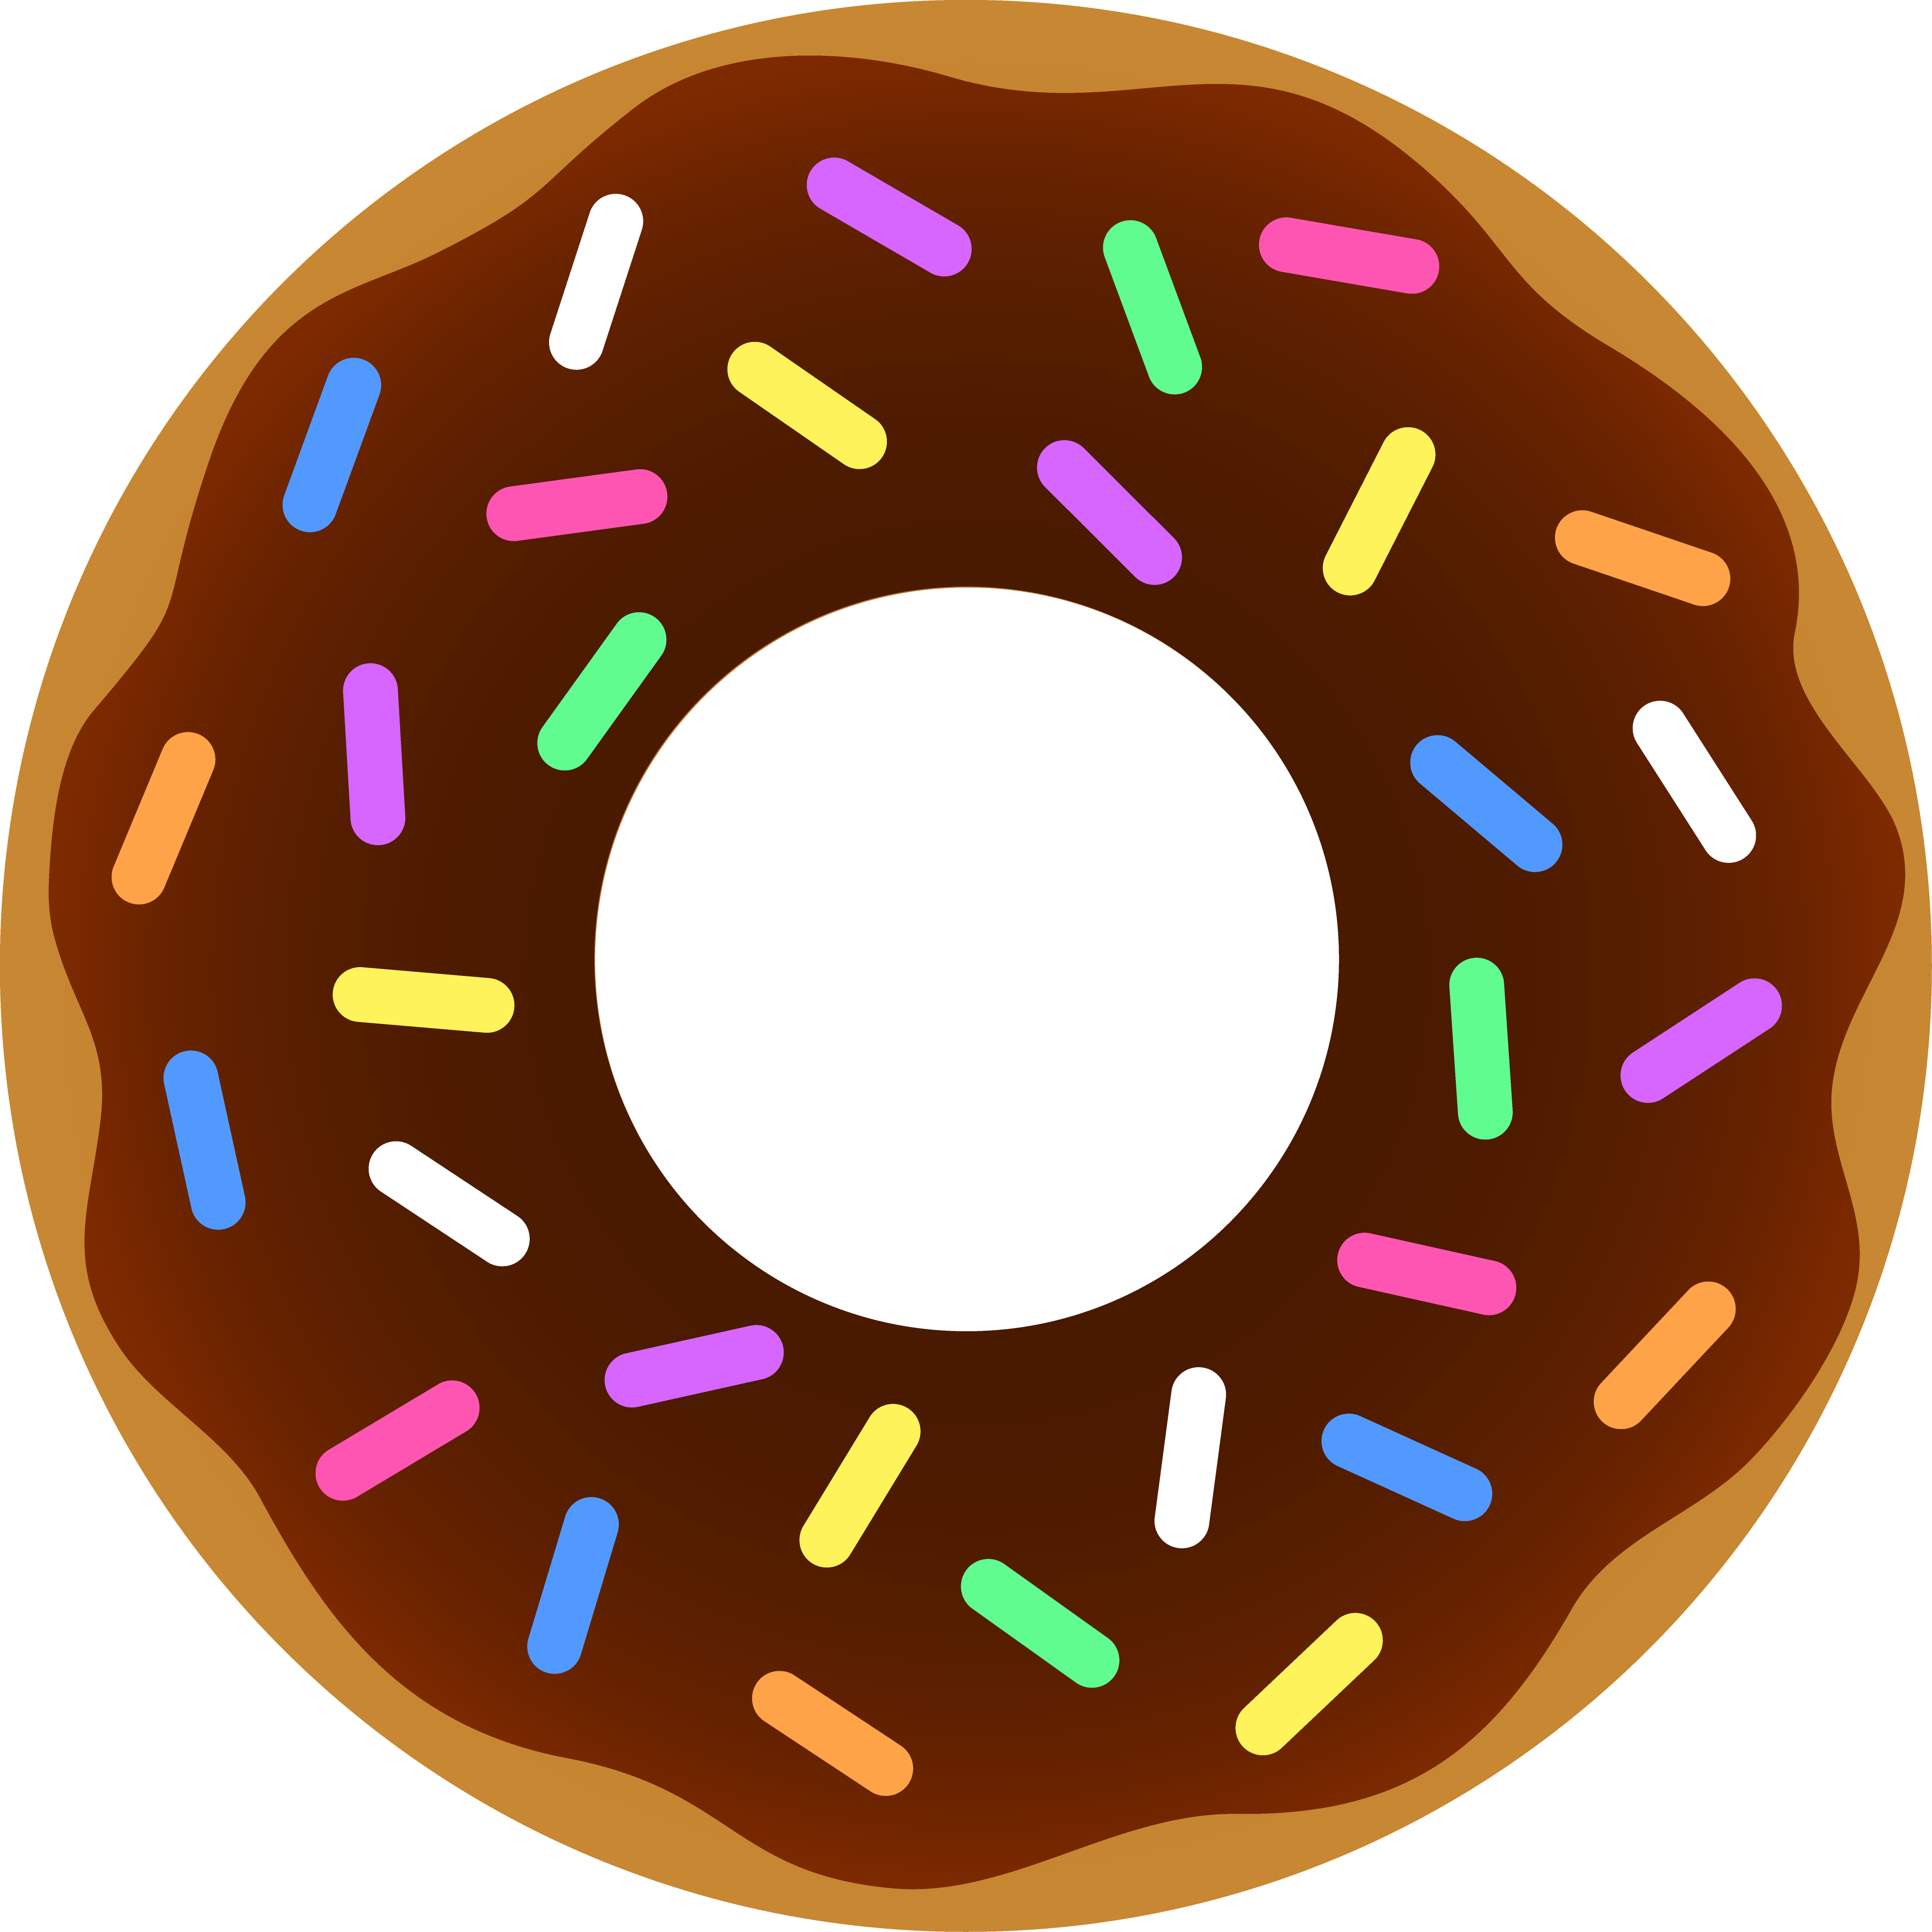 Doughnut clipart #2, Download drawings